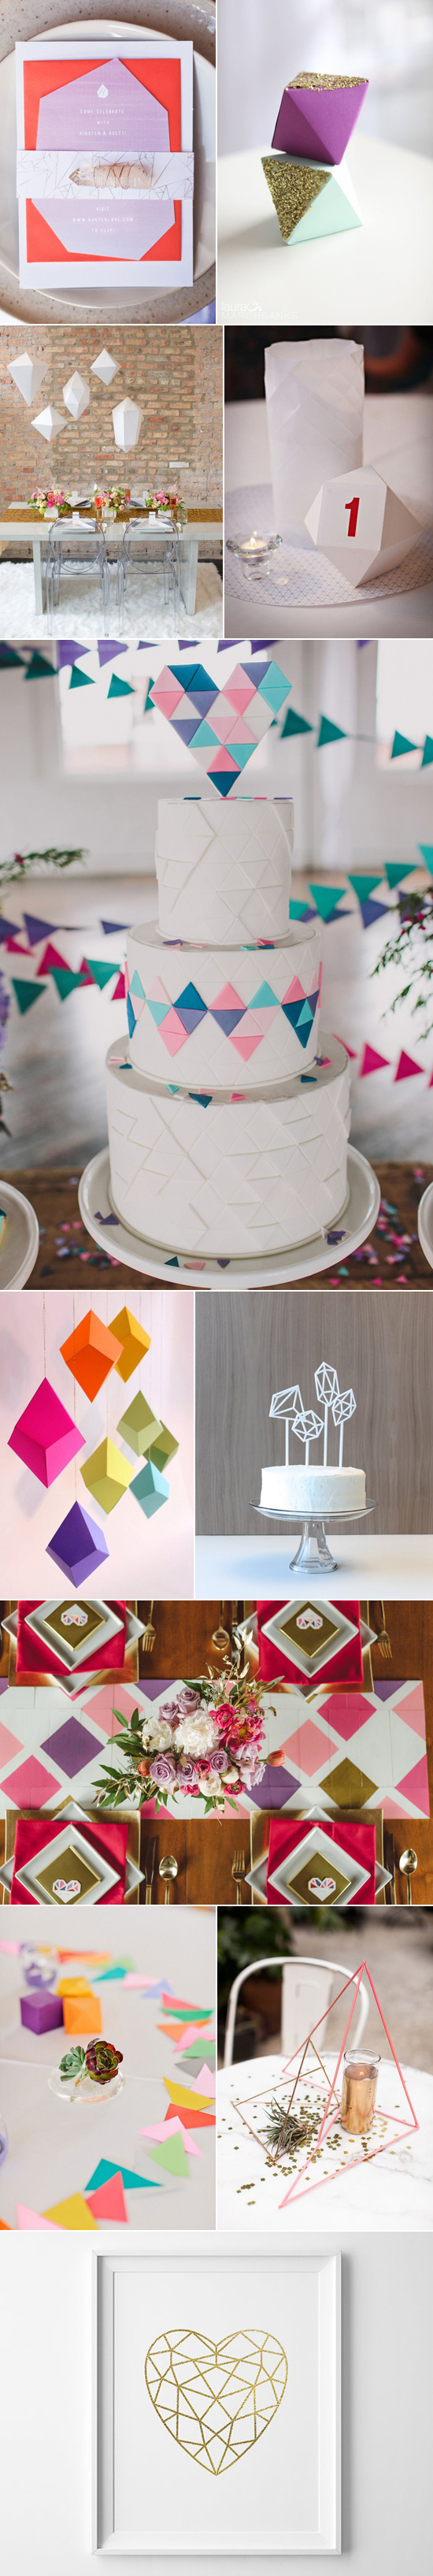 geometric wedding ideas002 Geometric Wedding Decor Ideas